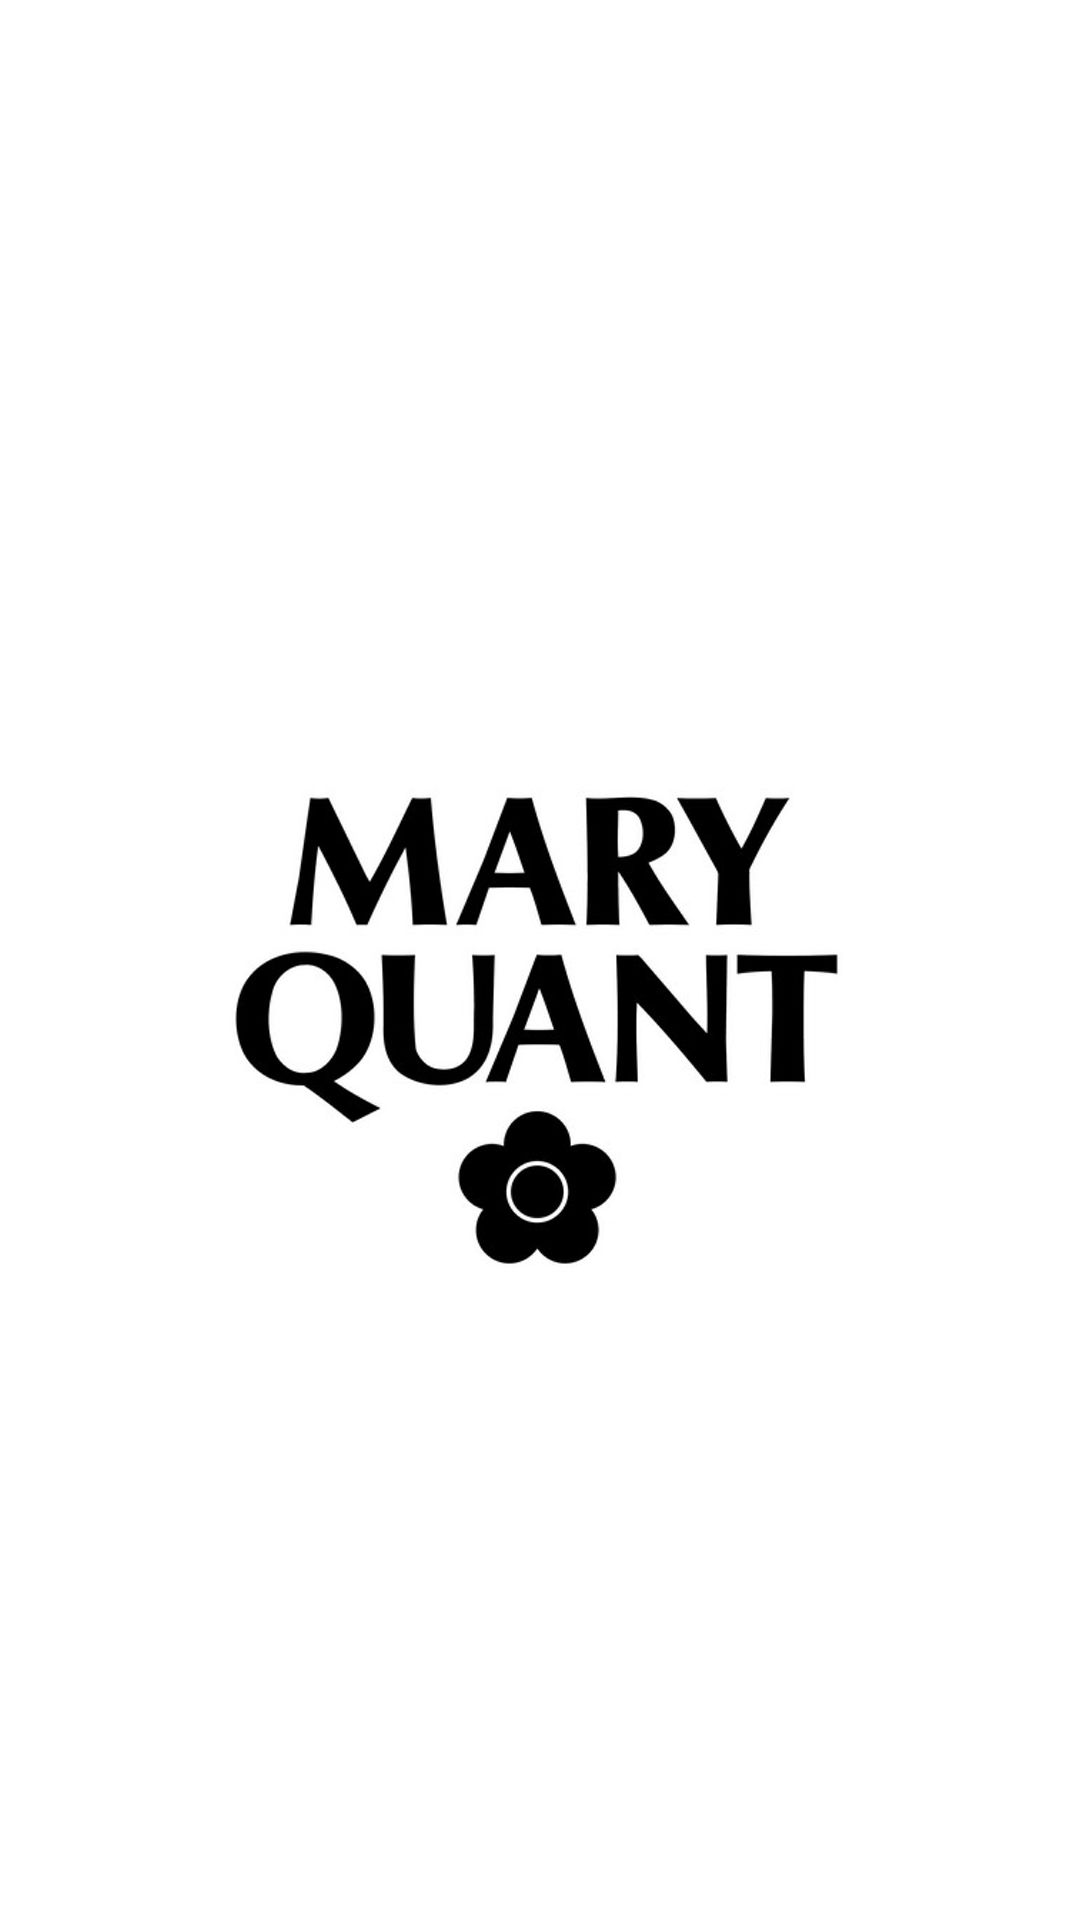 maryquant i02 - 20 MARY QUANT HQ Smartphone Wallpaper Collection